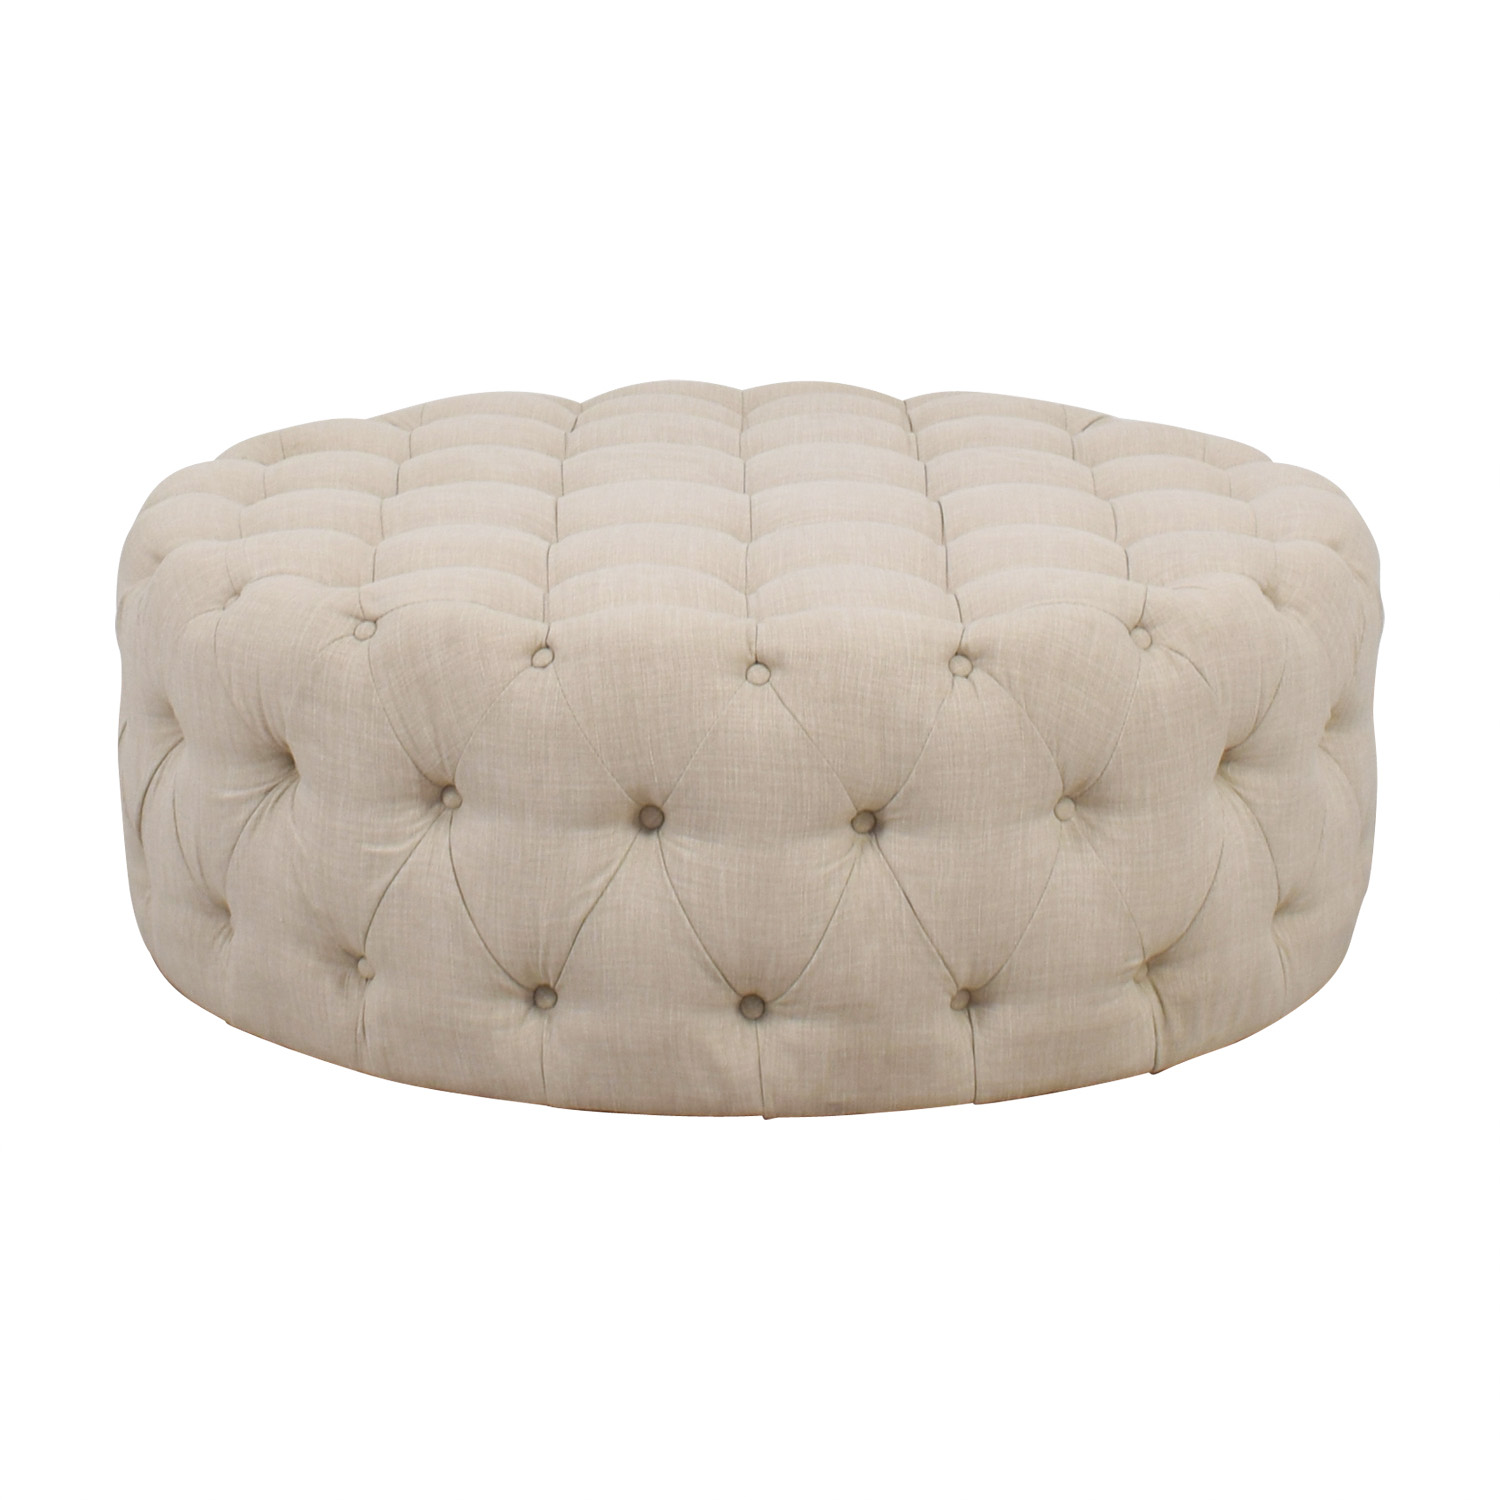 iNSPIRE Q Artisan iNSPIRE Q Artisan Knightsbridge Round Tufted Cocktail Ottoman for sale